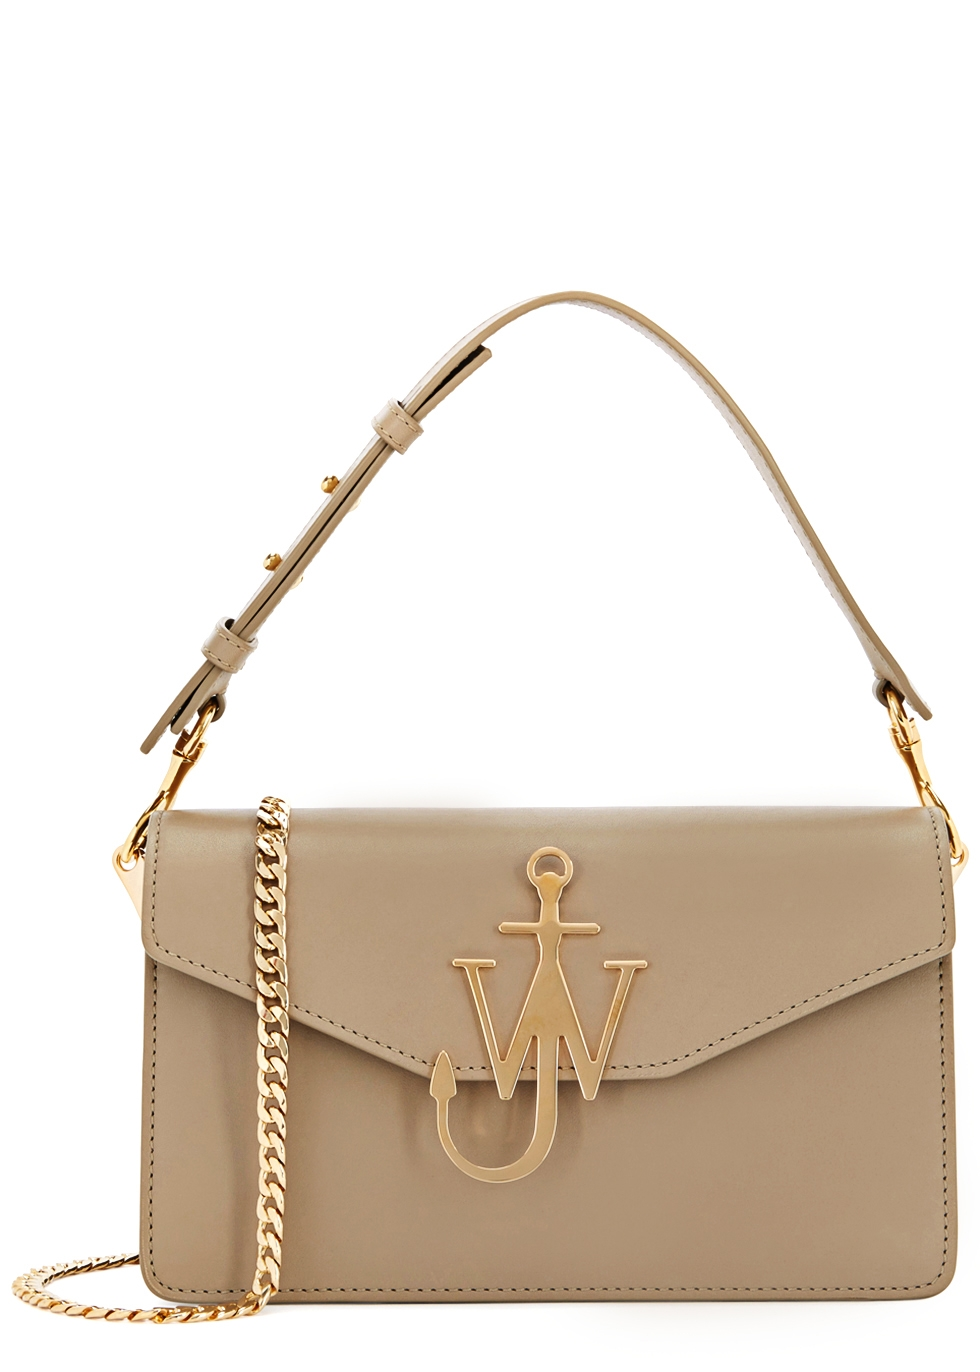 J.W.ANDERSON SAND LOGO LEATHER SHOULDER BAG